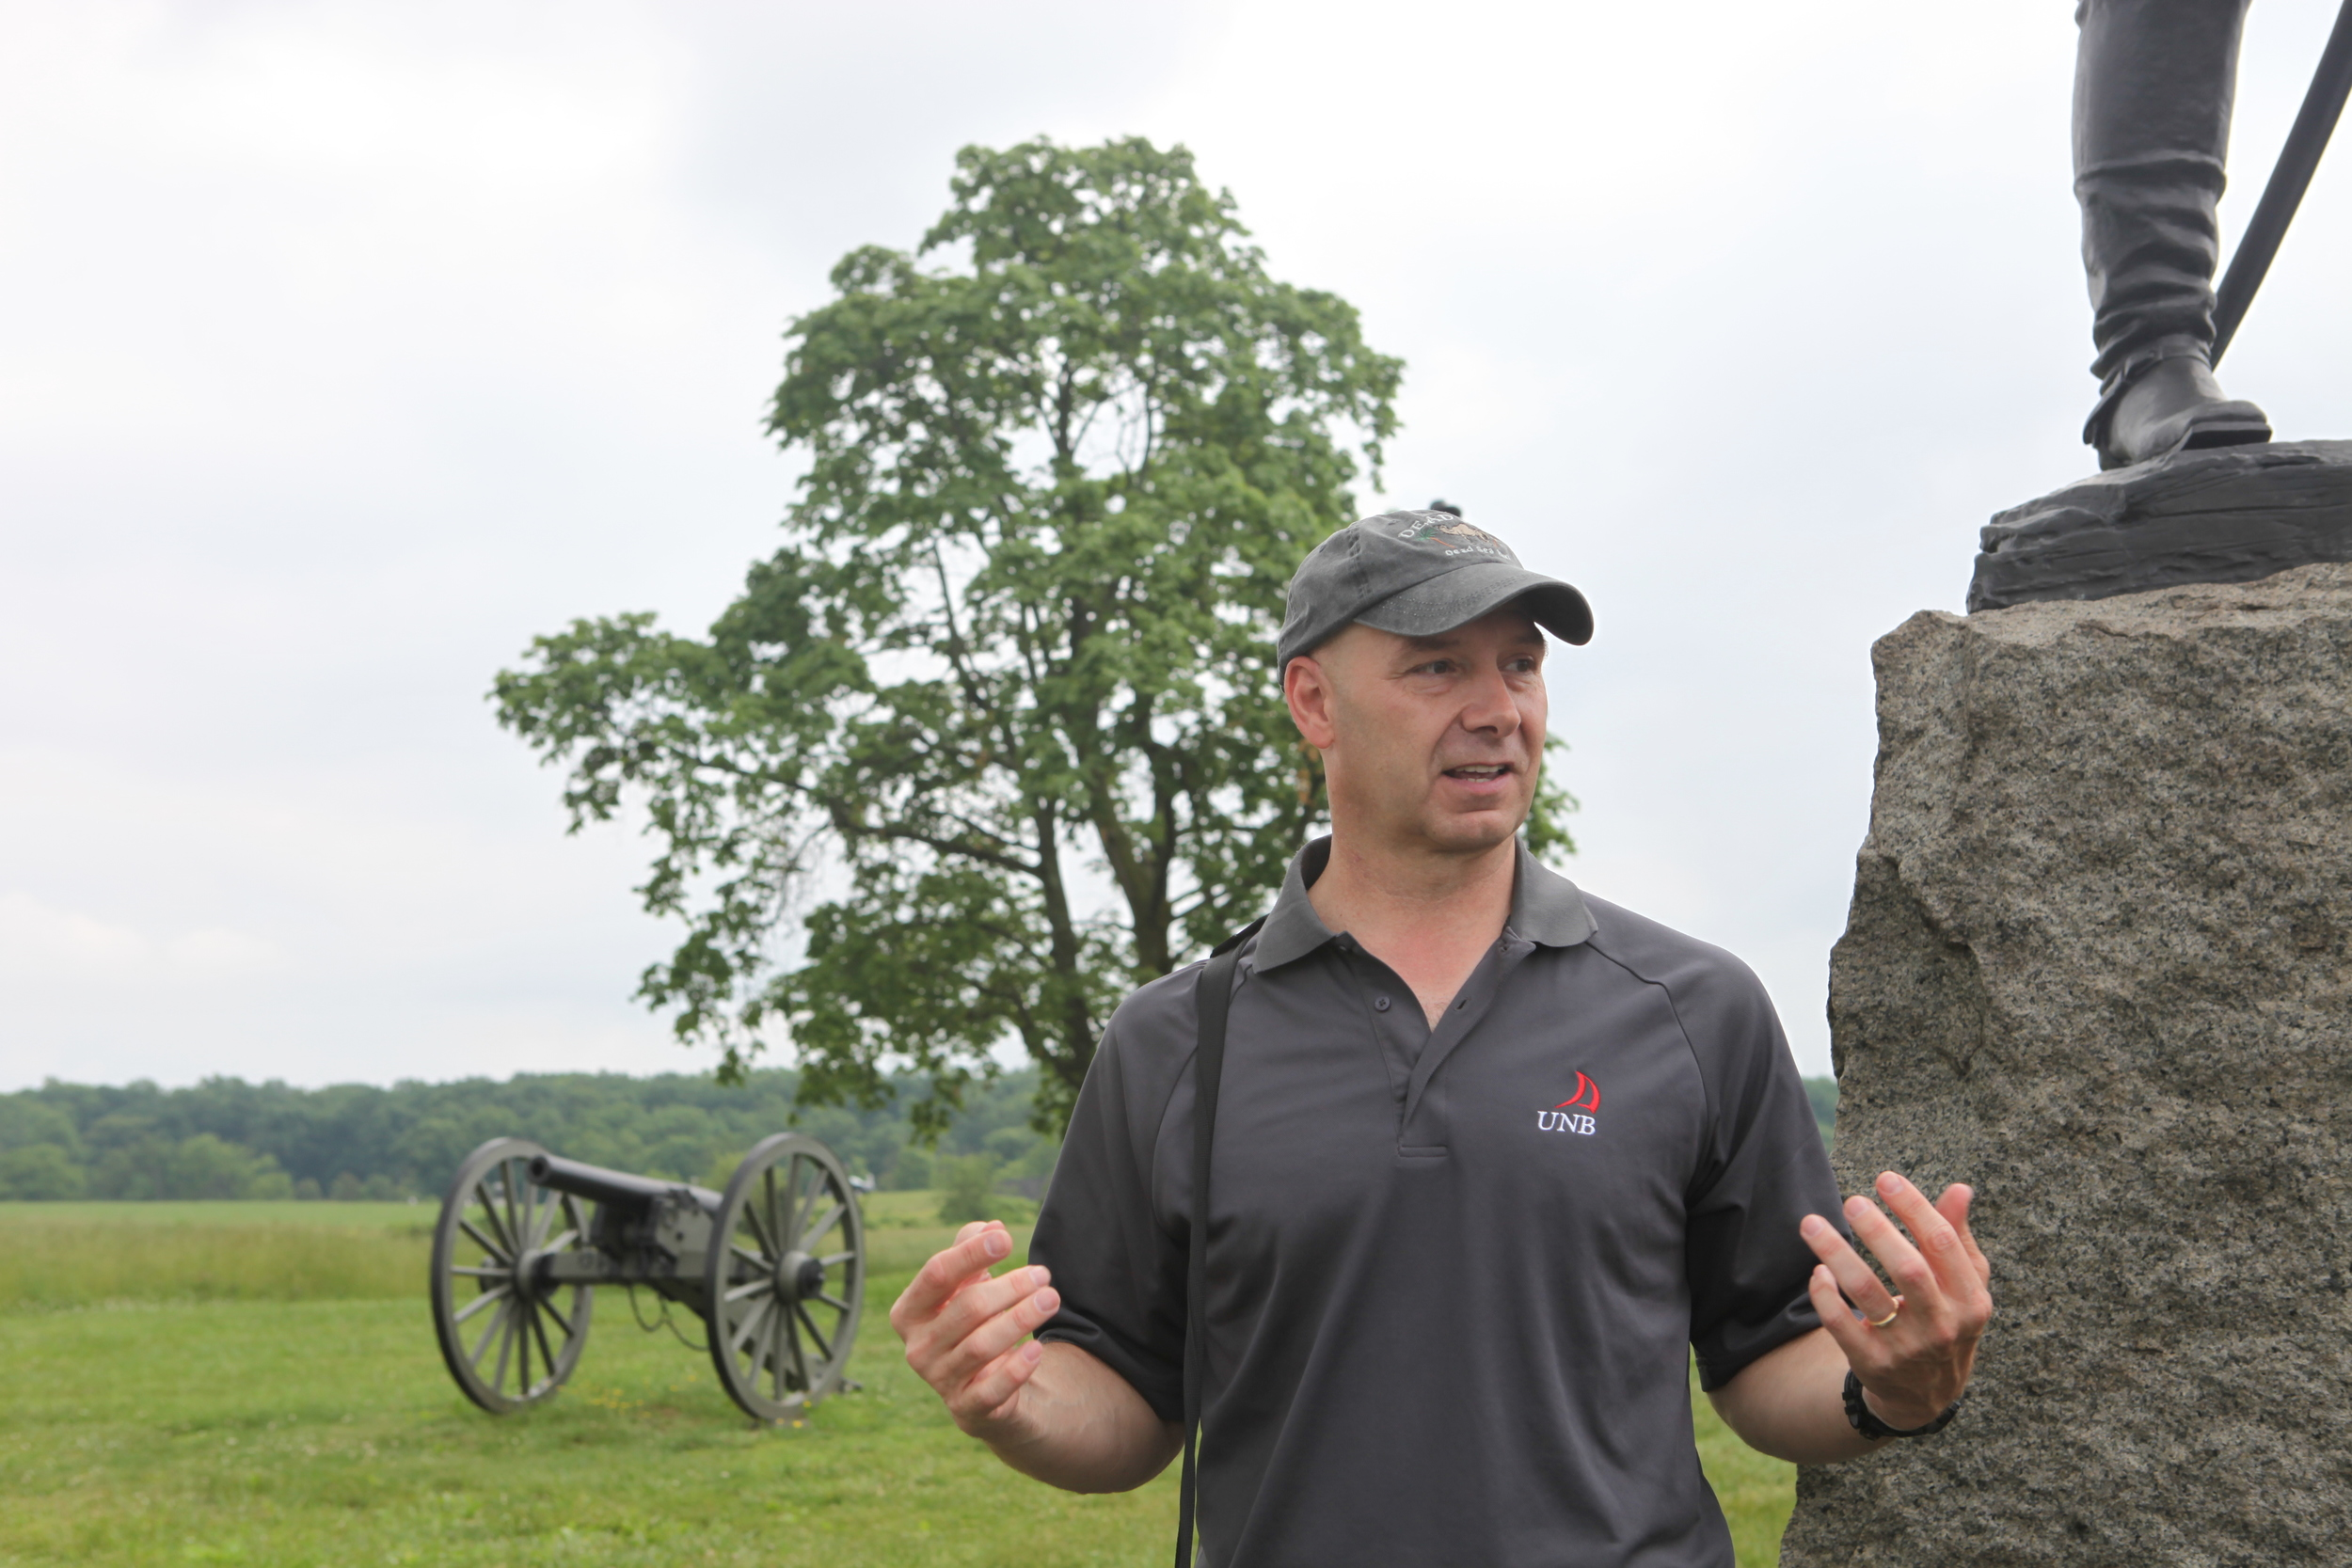 US Army War College Historian, Colonel Douglas Mastriano, says the Battle of Gettysburg changed world history. Copyright: A Nelson/ICRC